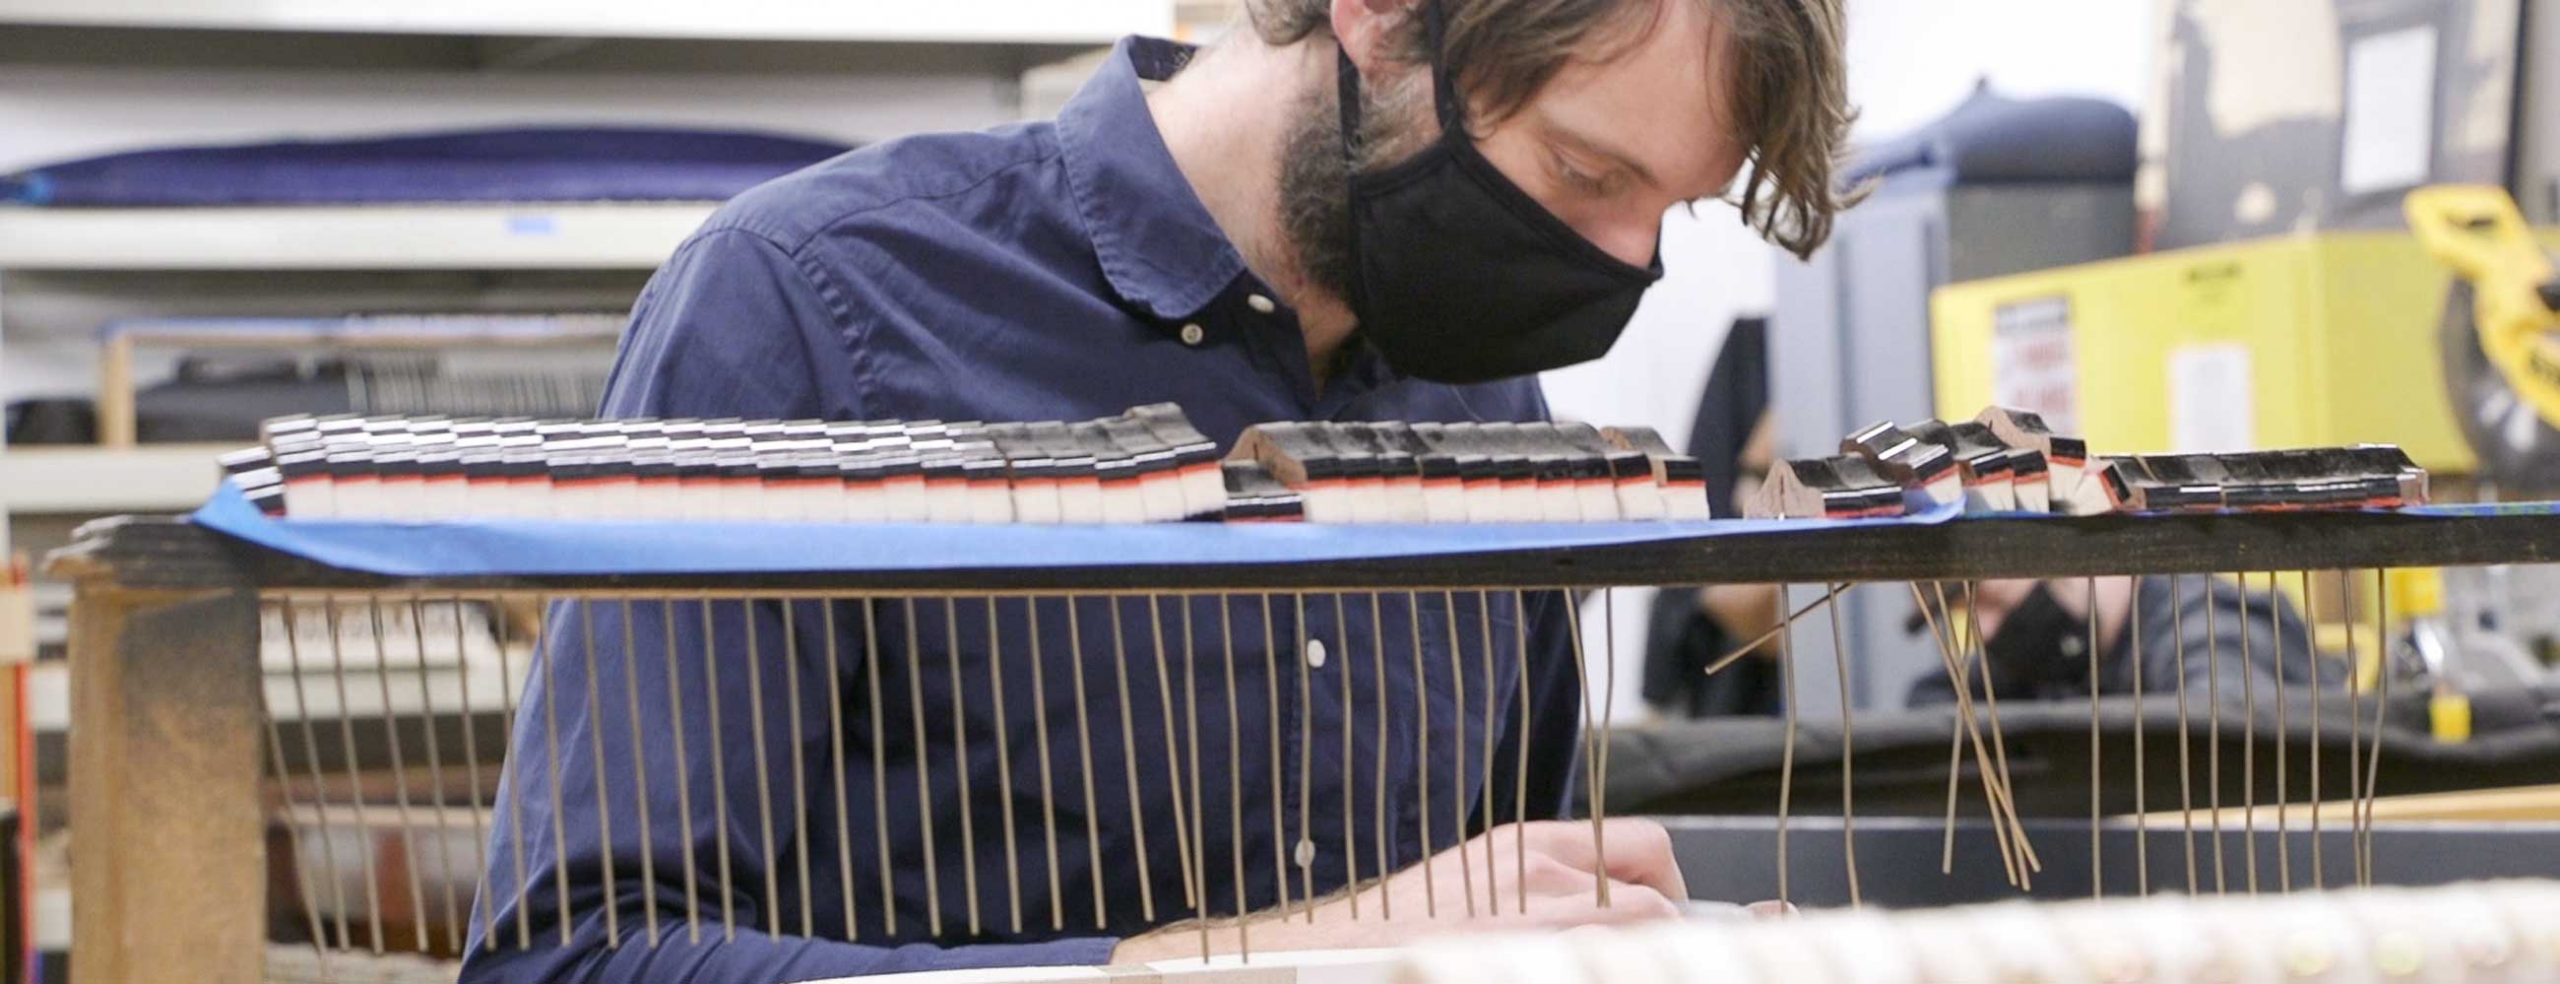 Man wearing face mask working on exposed piano strings in workshop